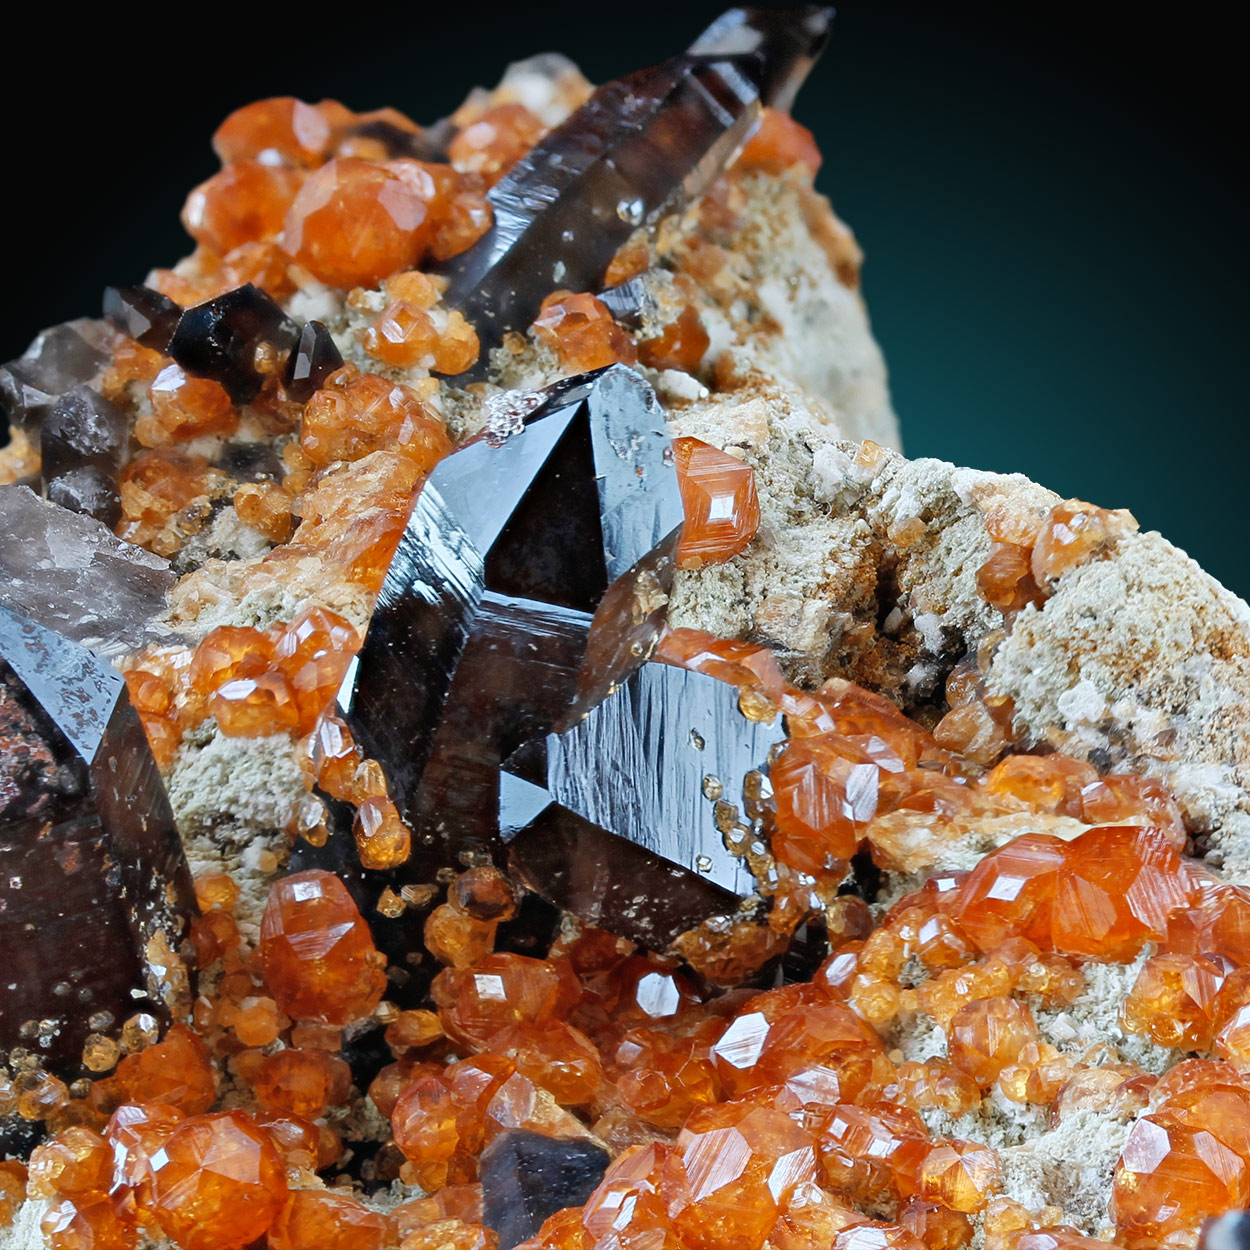 Smoky Quartz & Spessartine